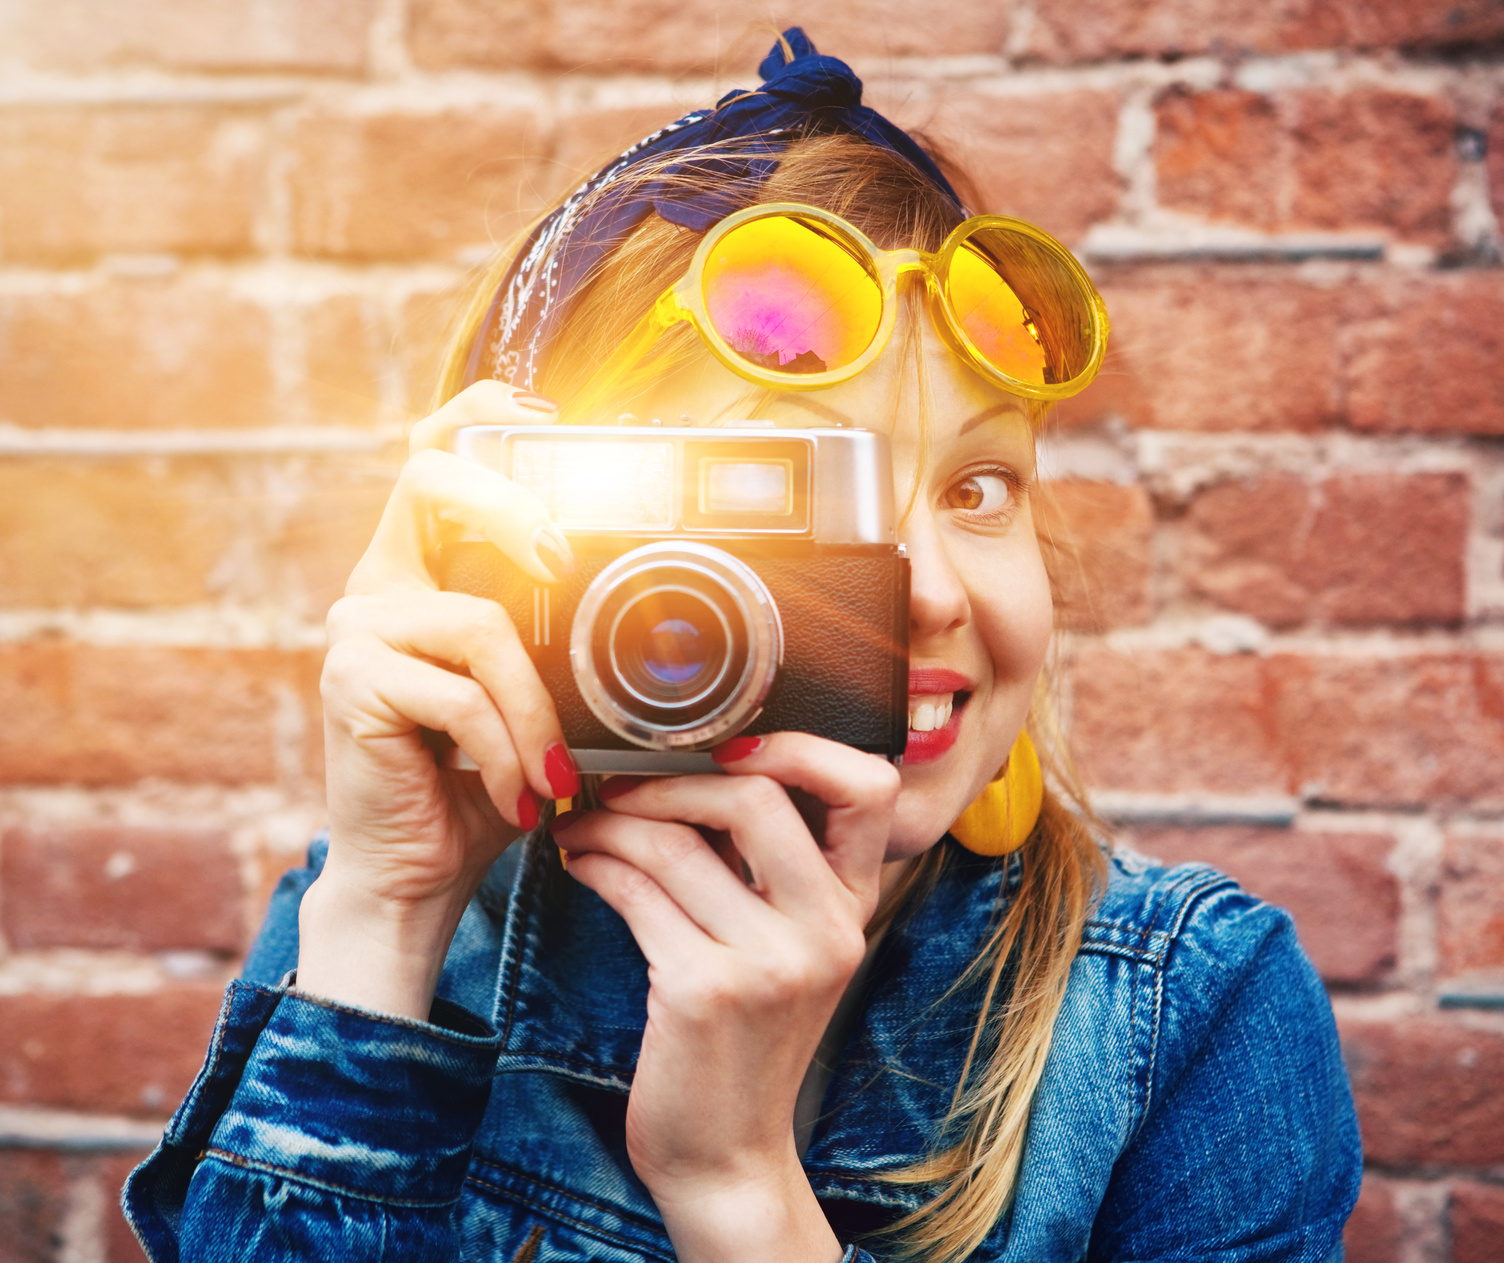 Places Where to Find Free Images for Your Website